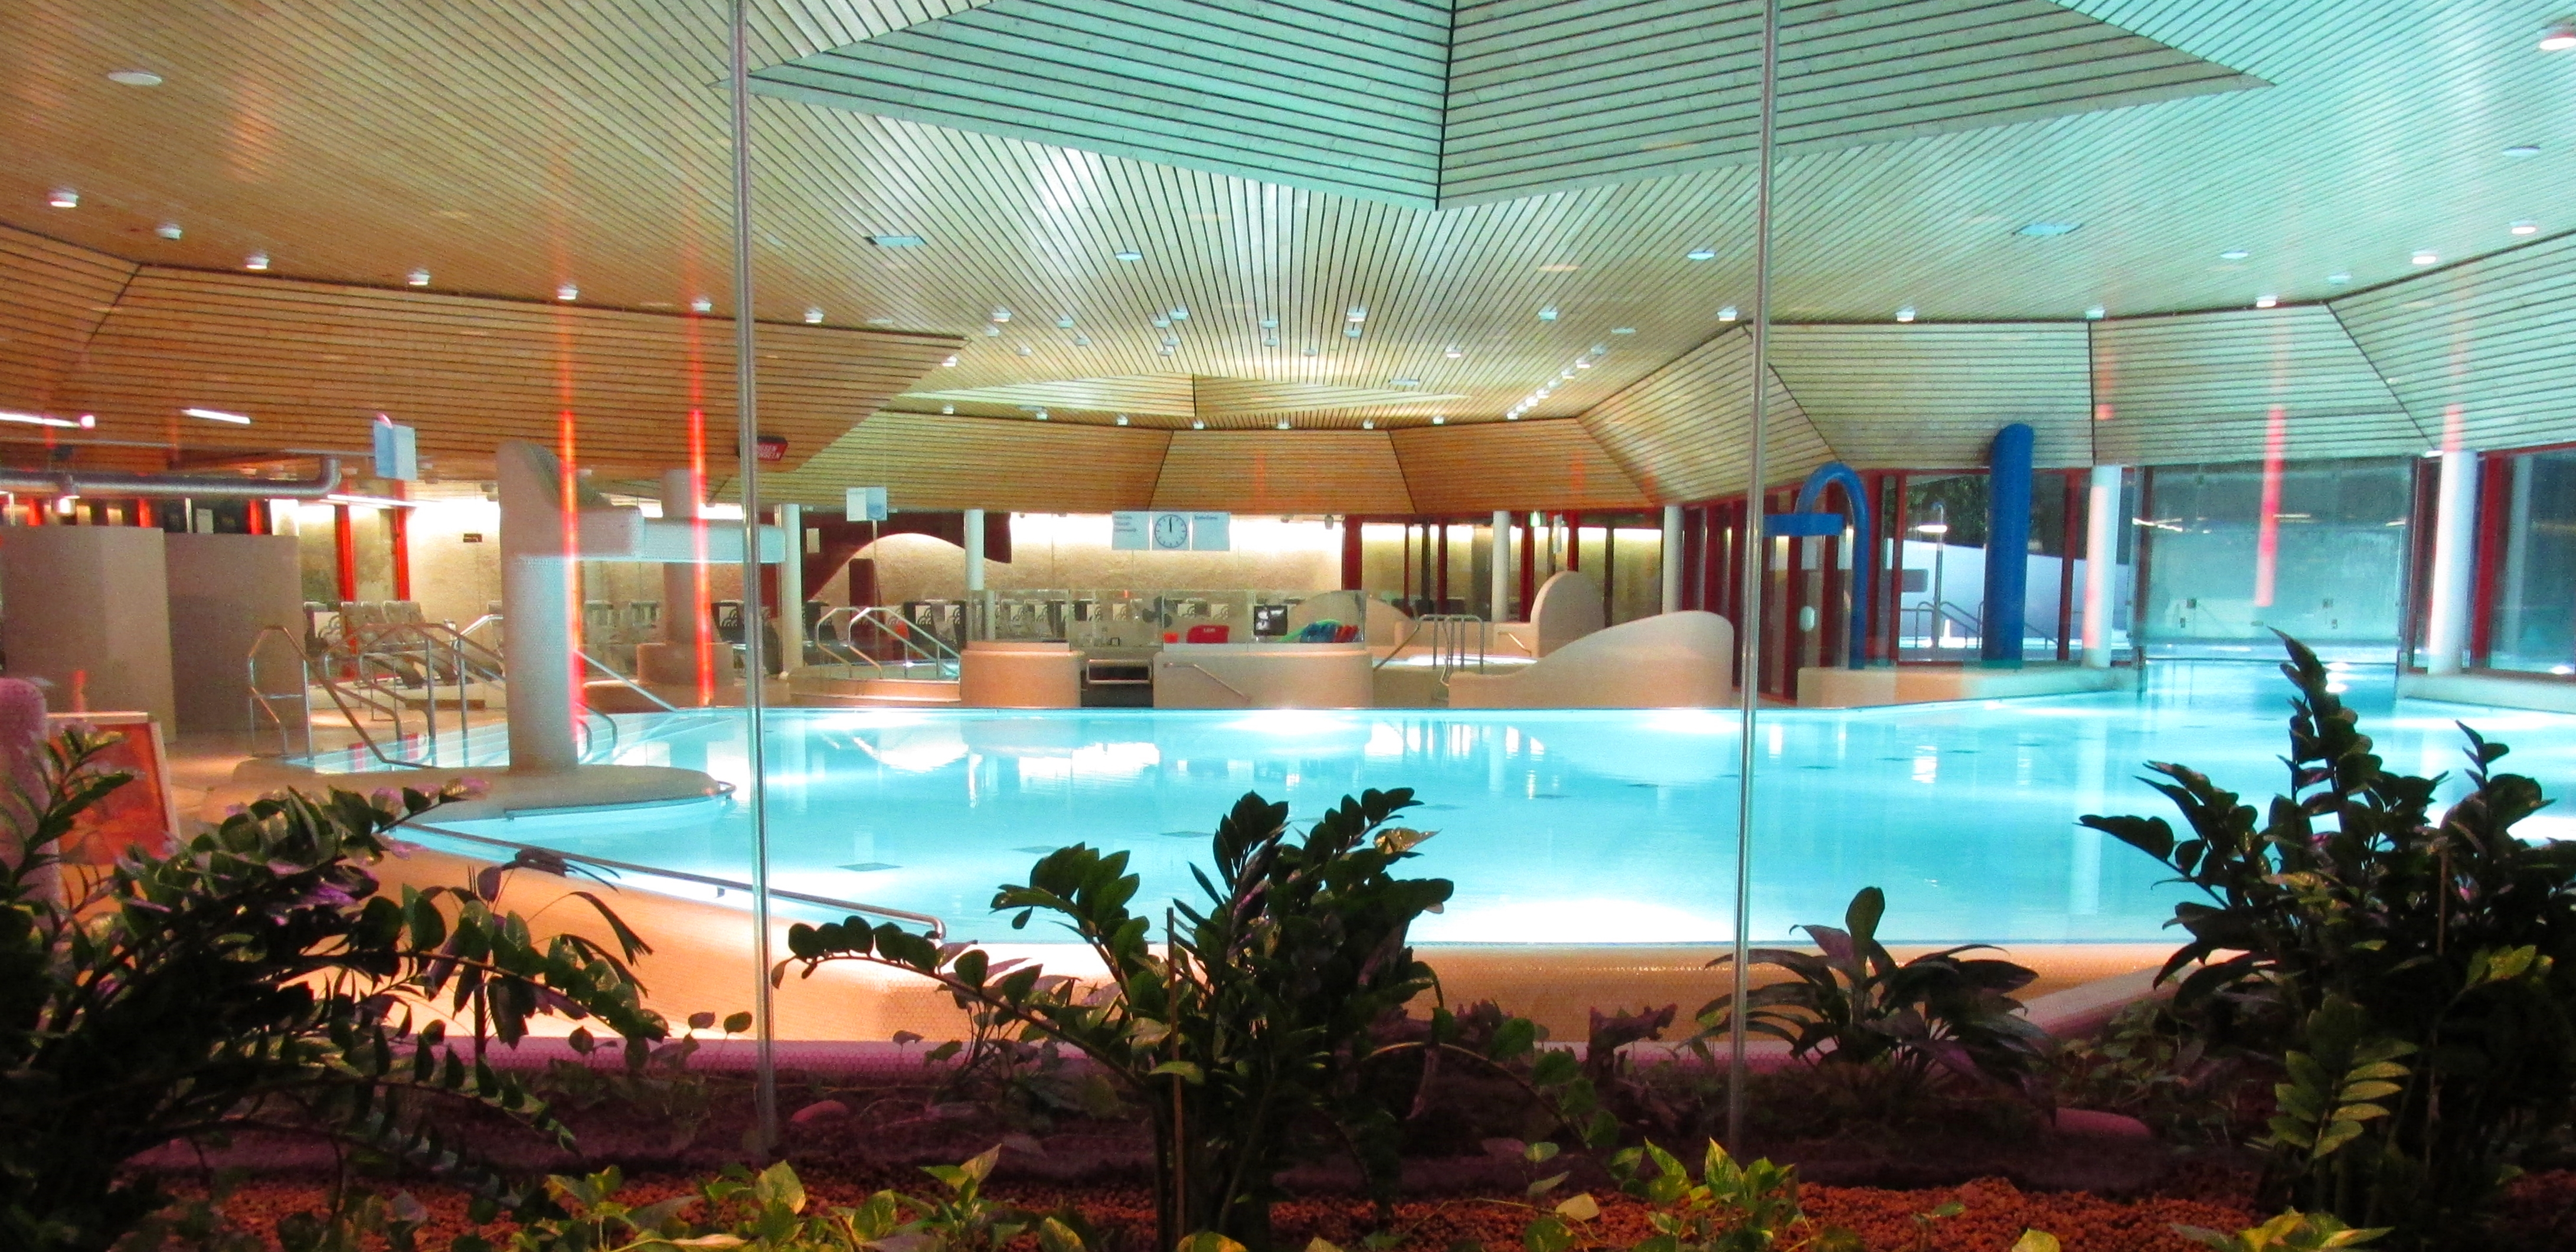 Bad Rotenfels Therme